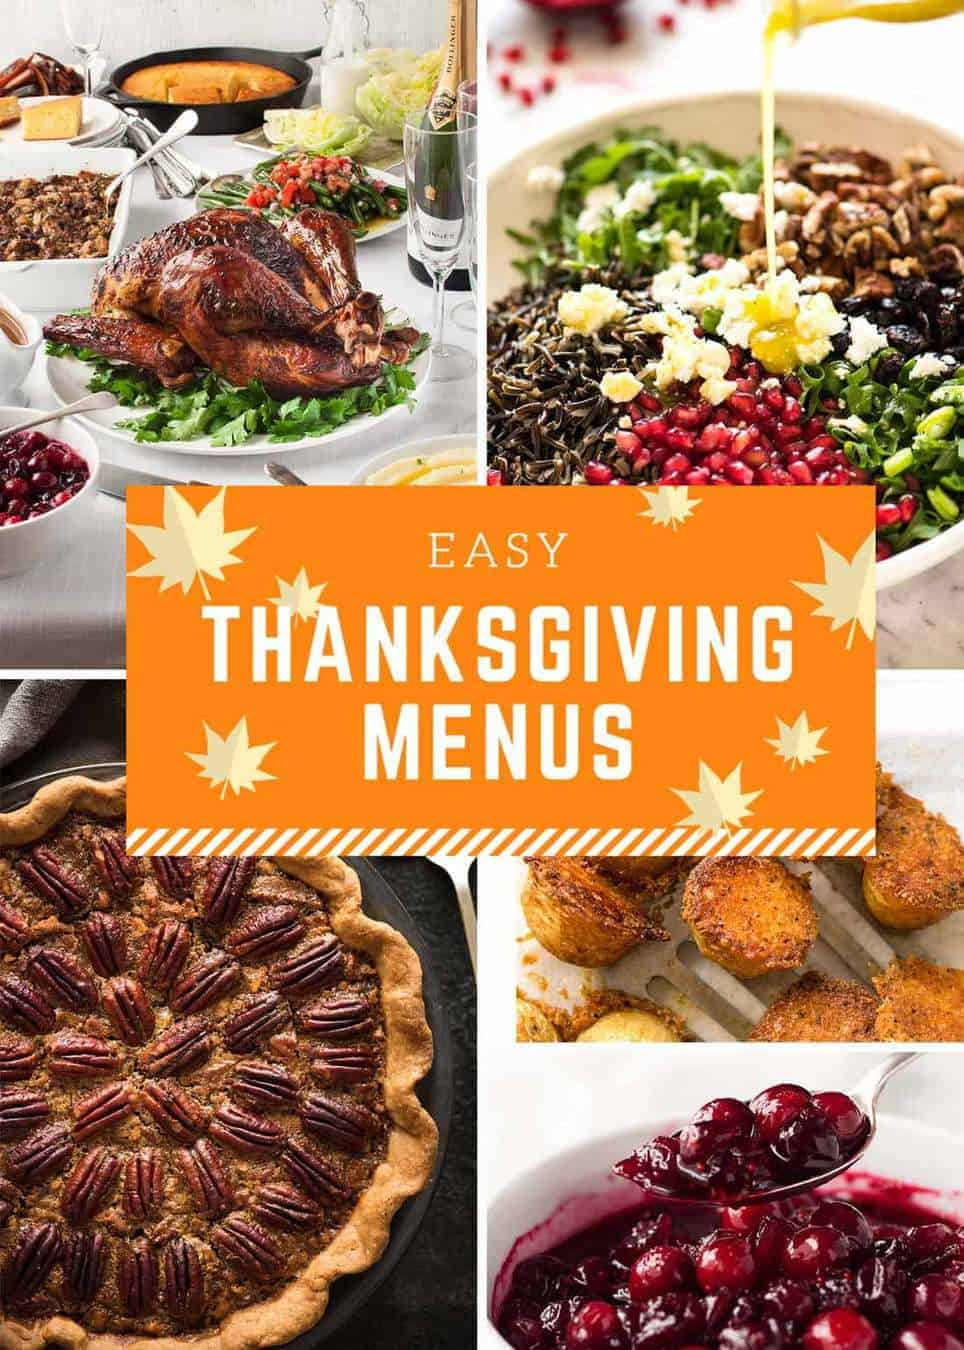 Draeger's Thanksgiving Menu Fully Prepared Dinners. Substitutions Politely Declined. Substitutions Politely Declined. Substitutions Politely Declined. Substitutions Politely Declined. Fully Prepared Main Courses. Classic Prepared Sides Thanksgiving Desserts.